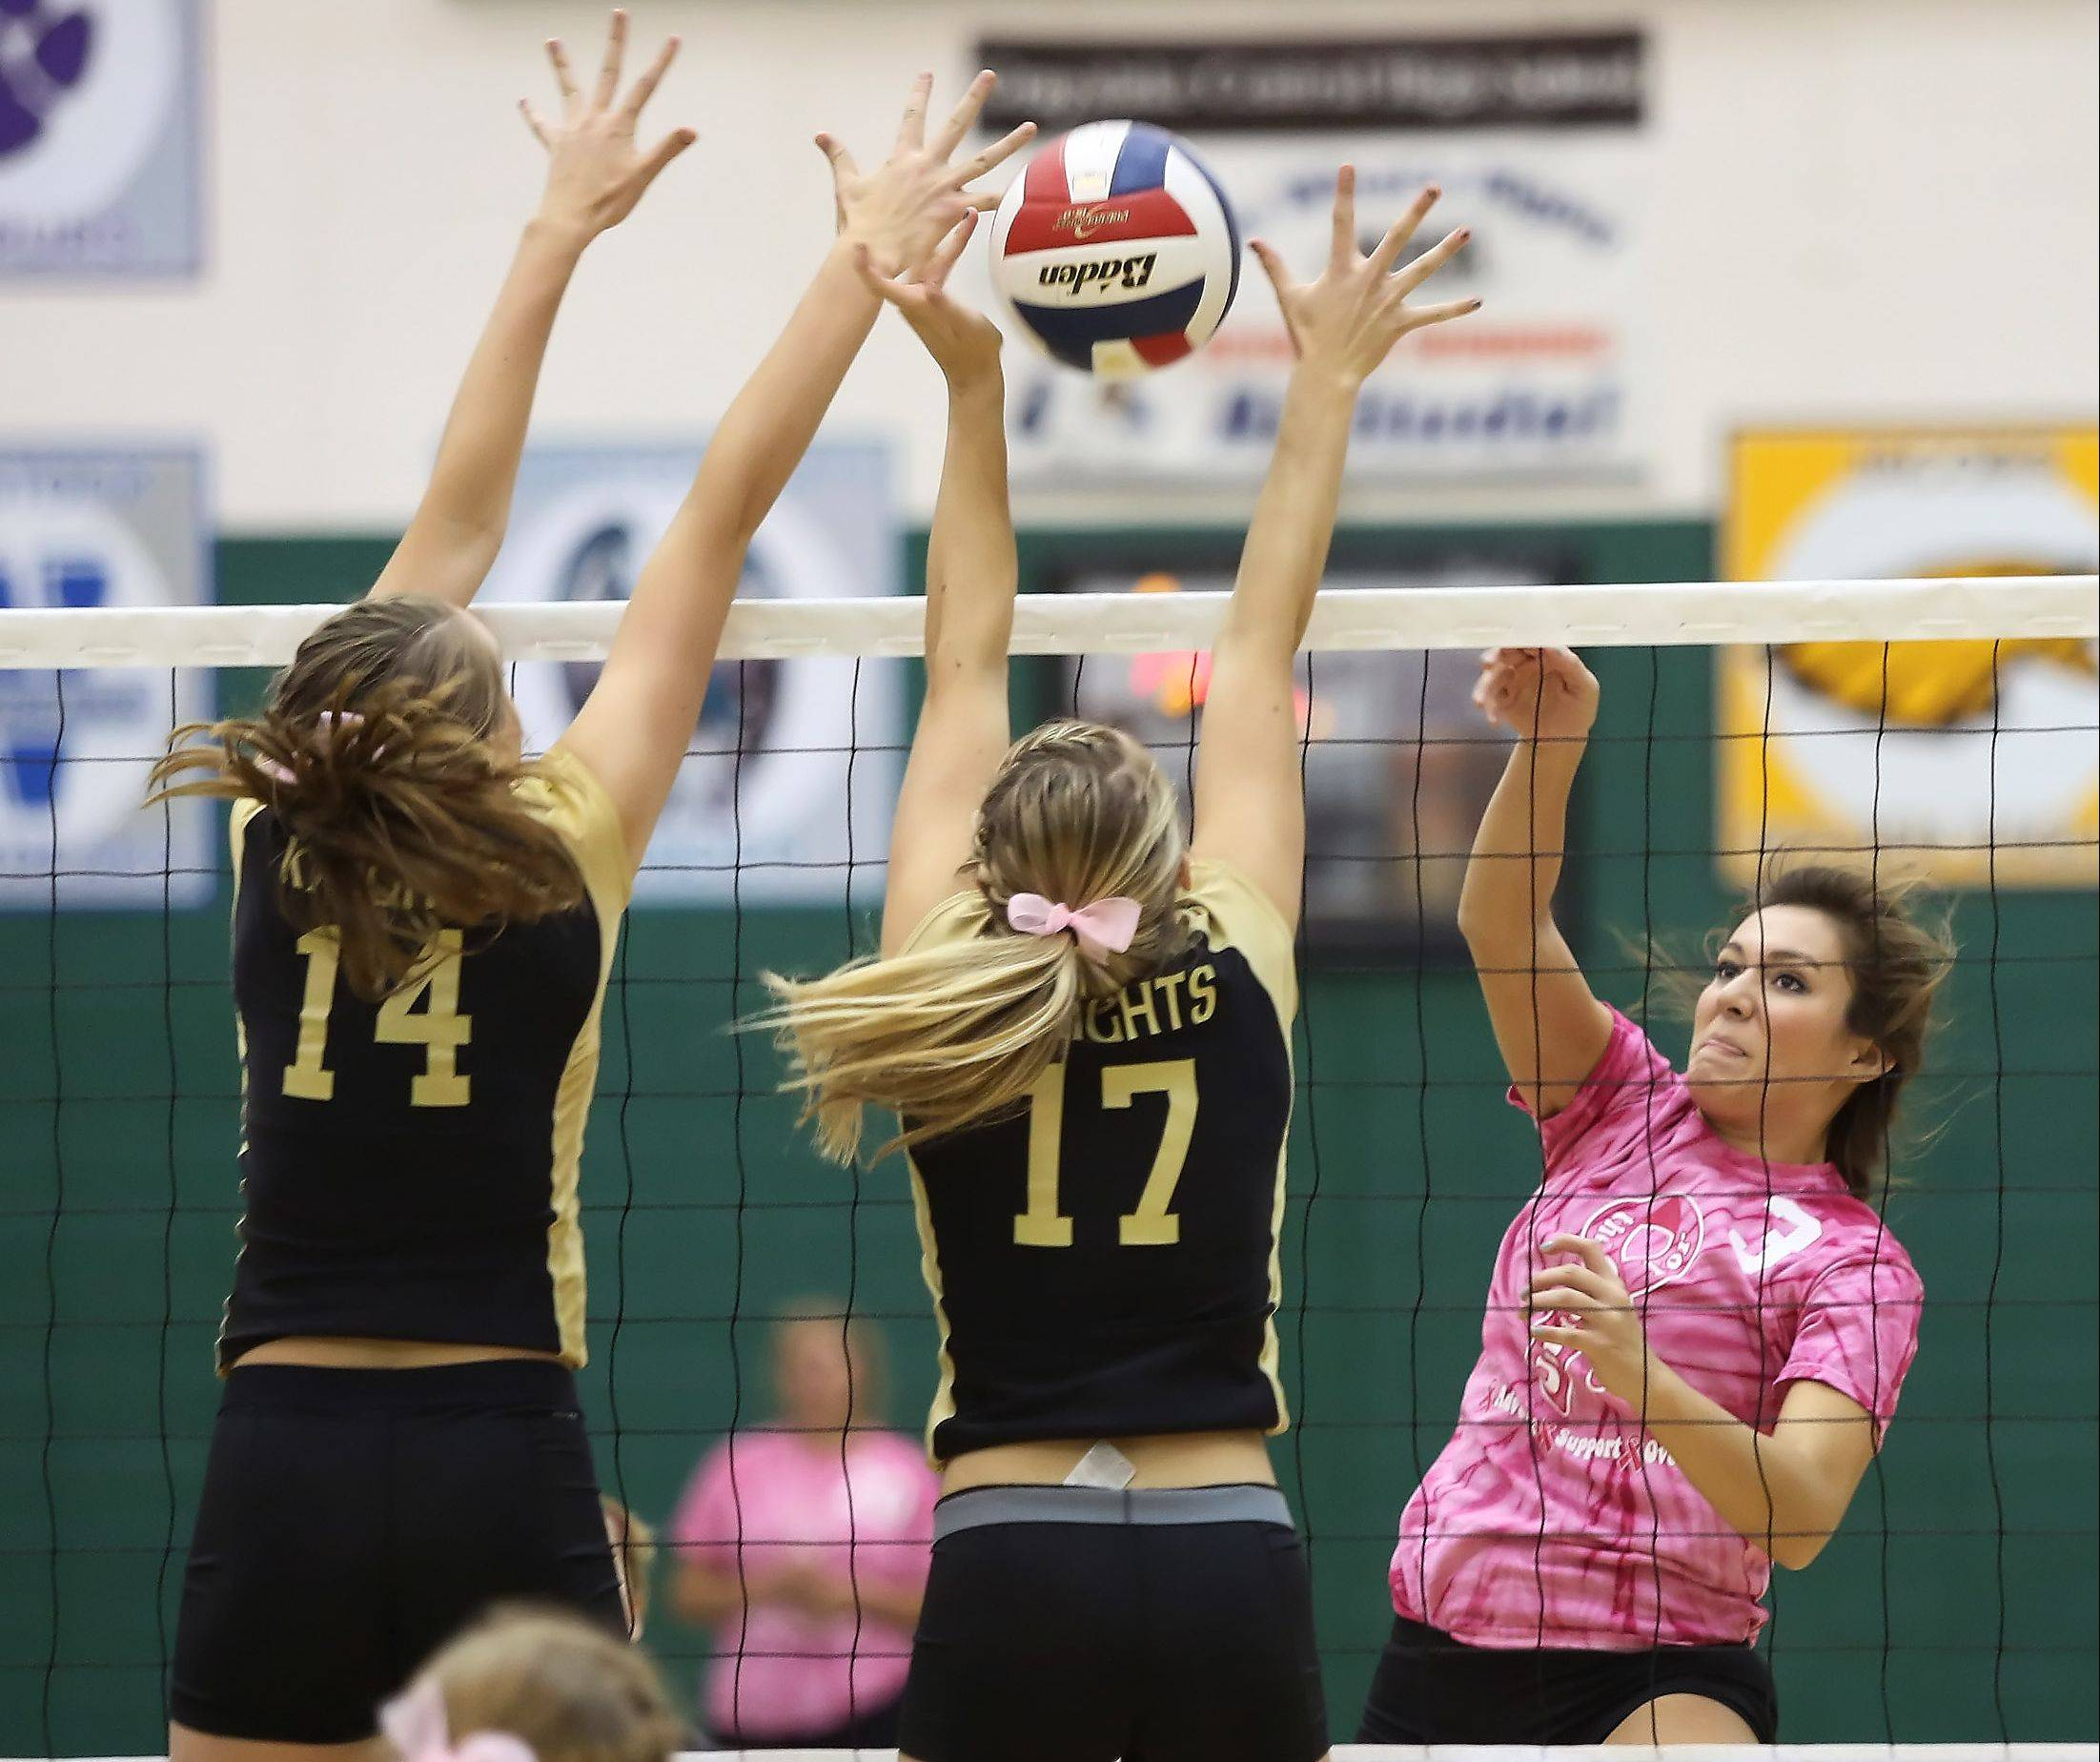 Grayslake Central hitter Gabi Casper slams the ball past Grayslake North blockers Kendall Buckman and Alaina Geissberger, left, during Thursday's match.